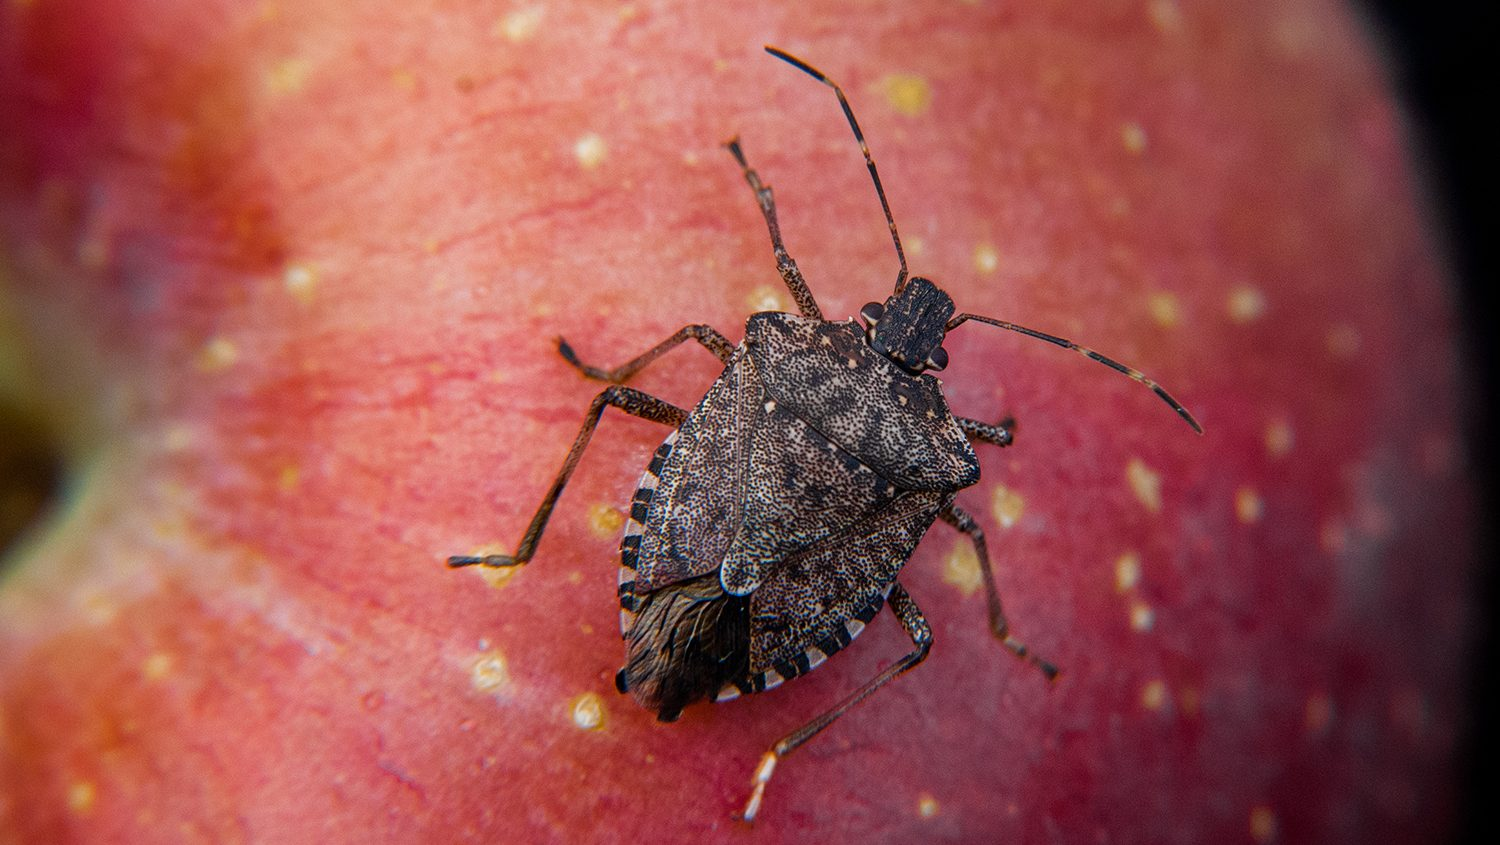 Close-up of a stink bug.